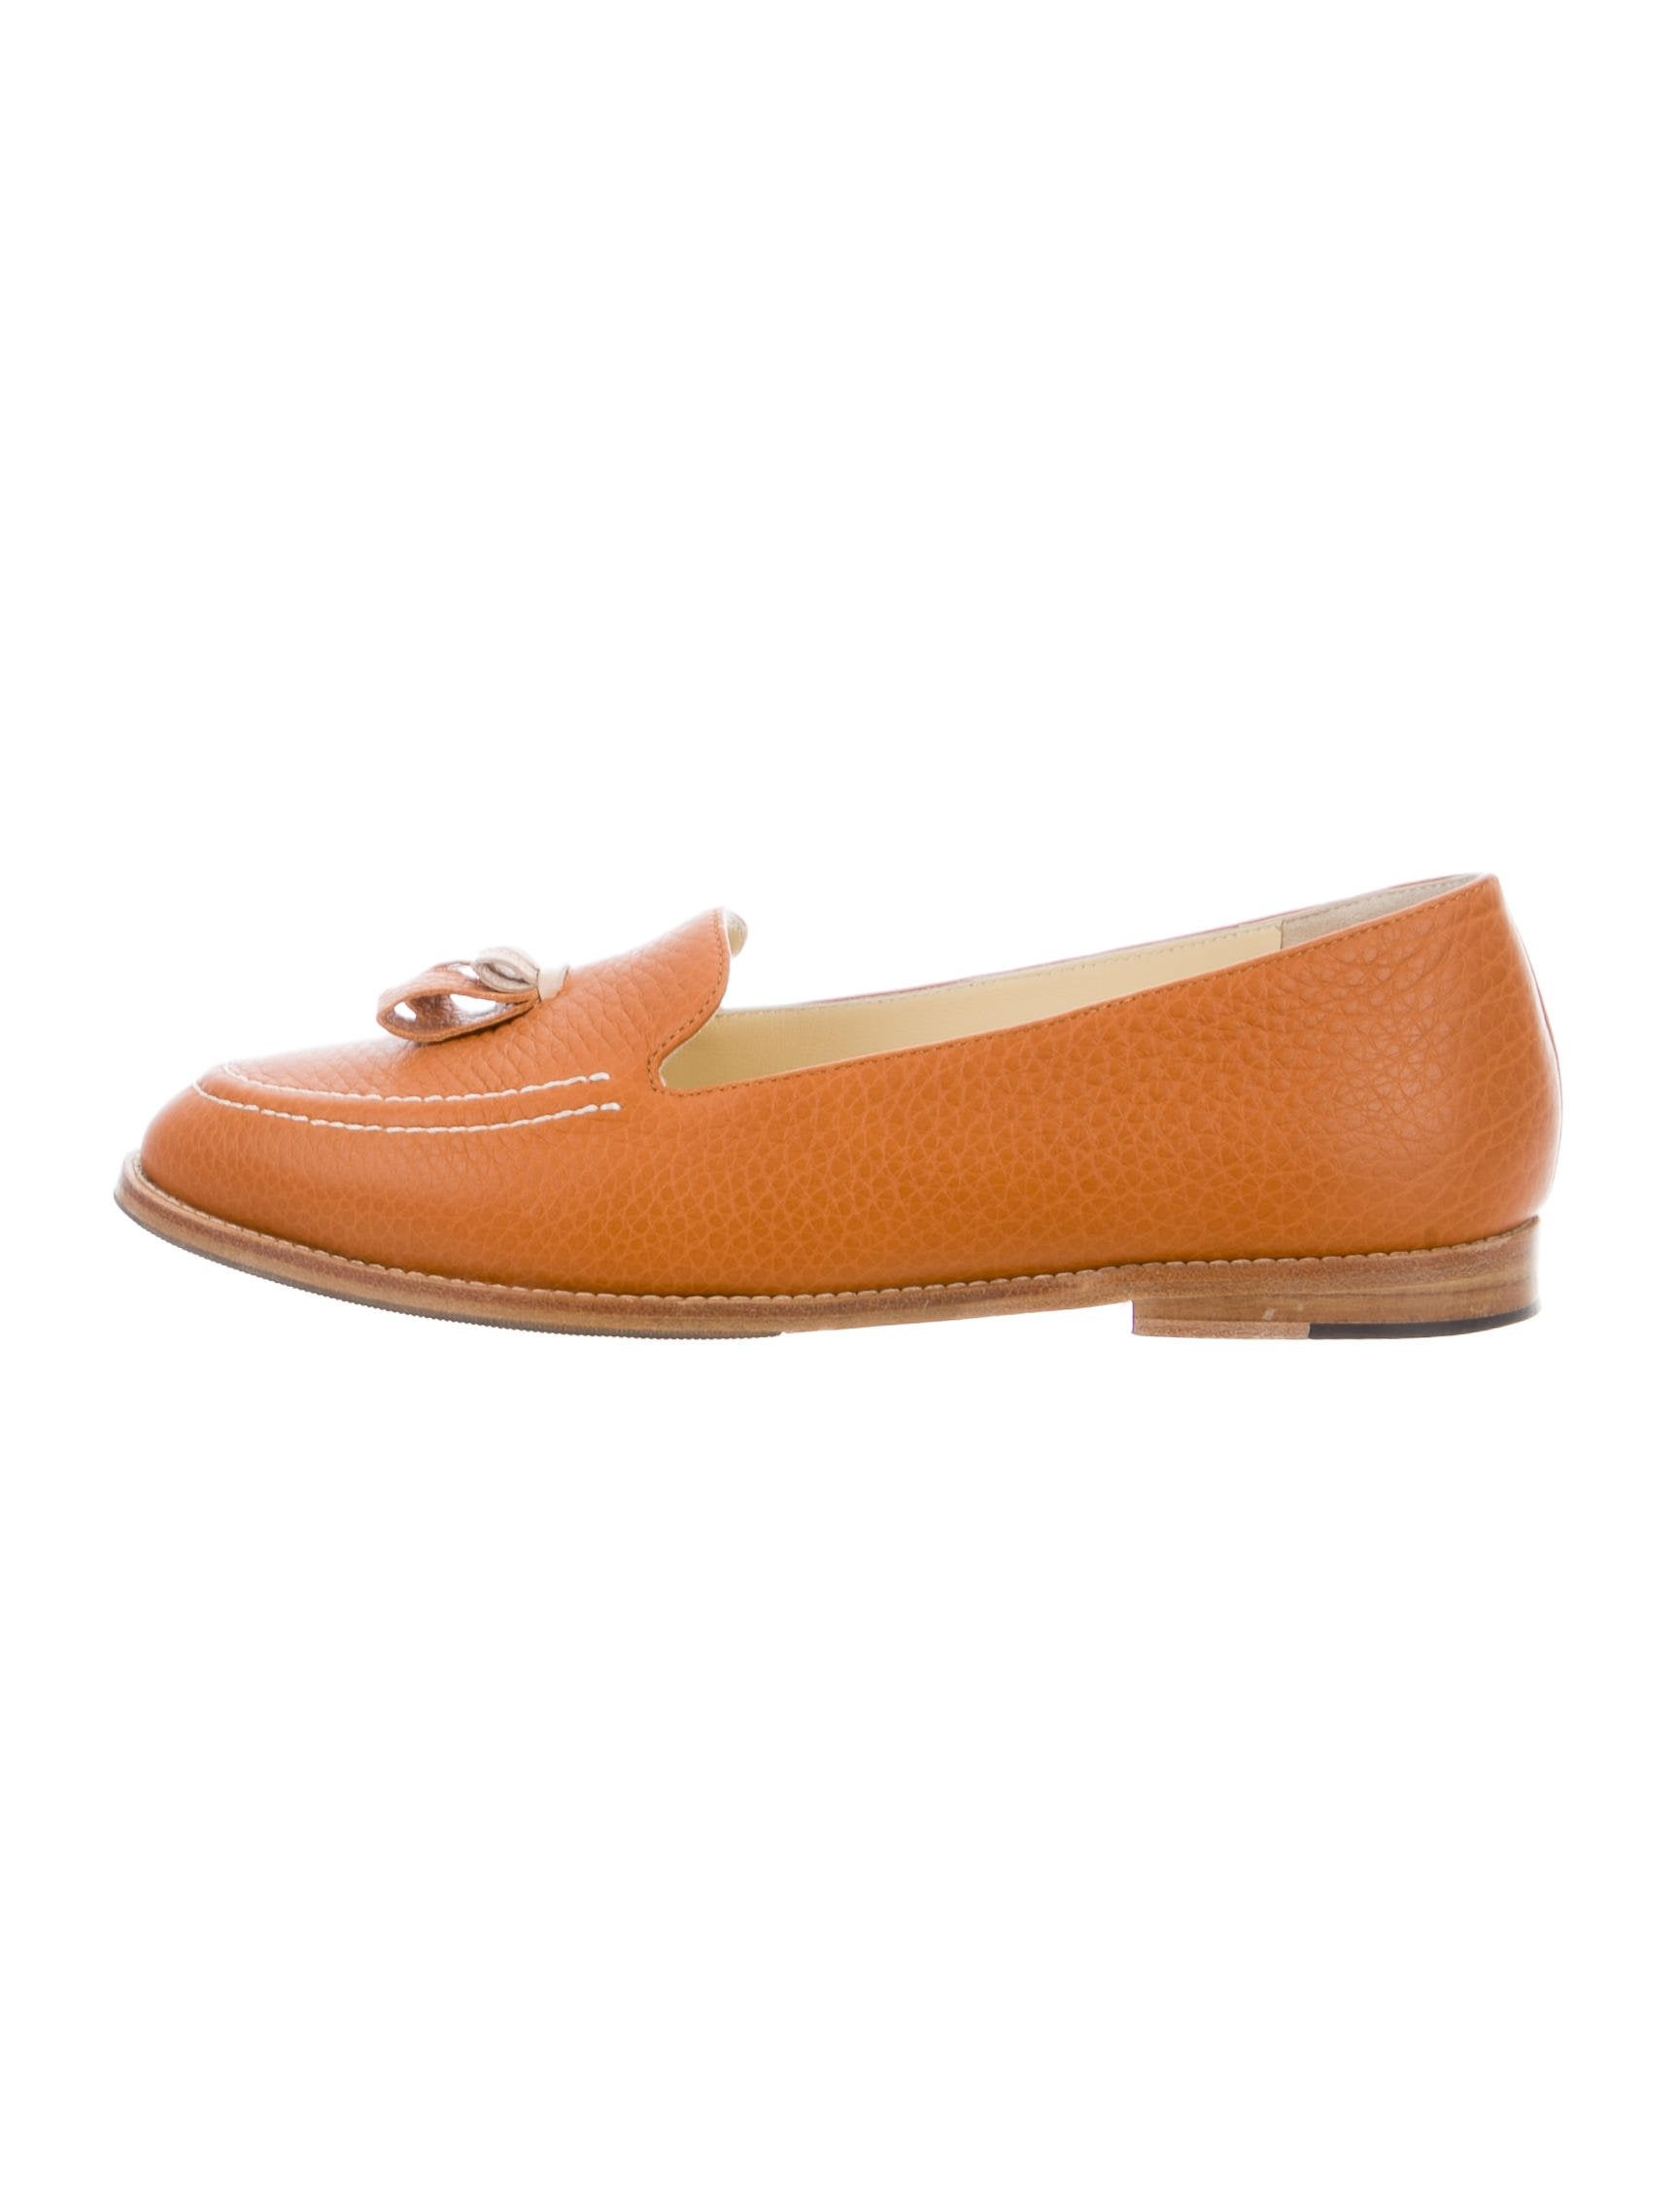 cheap sale best Sarah Flint Helen Leather Loafers buy cheap eastbay Tx8i8NfW2